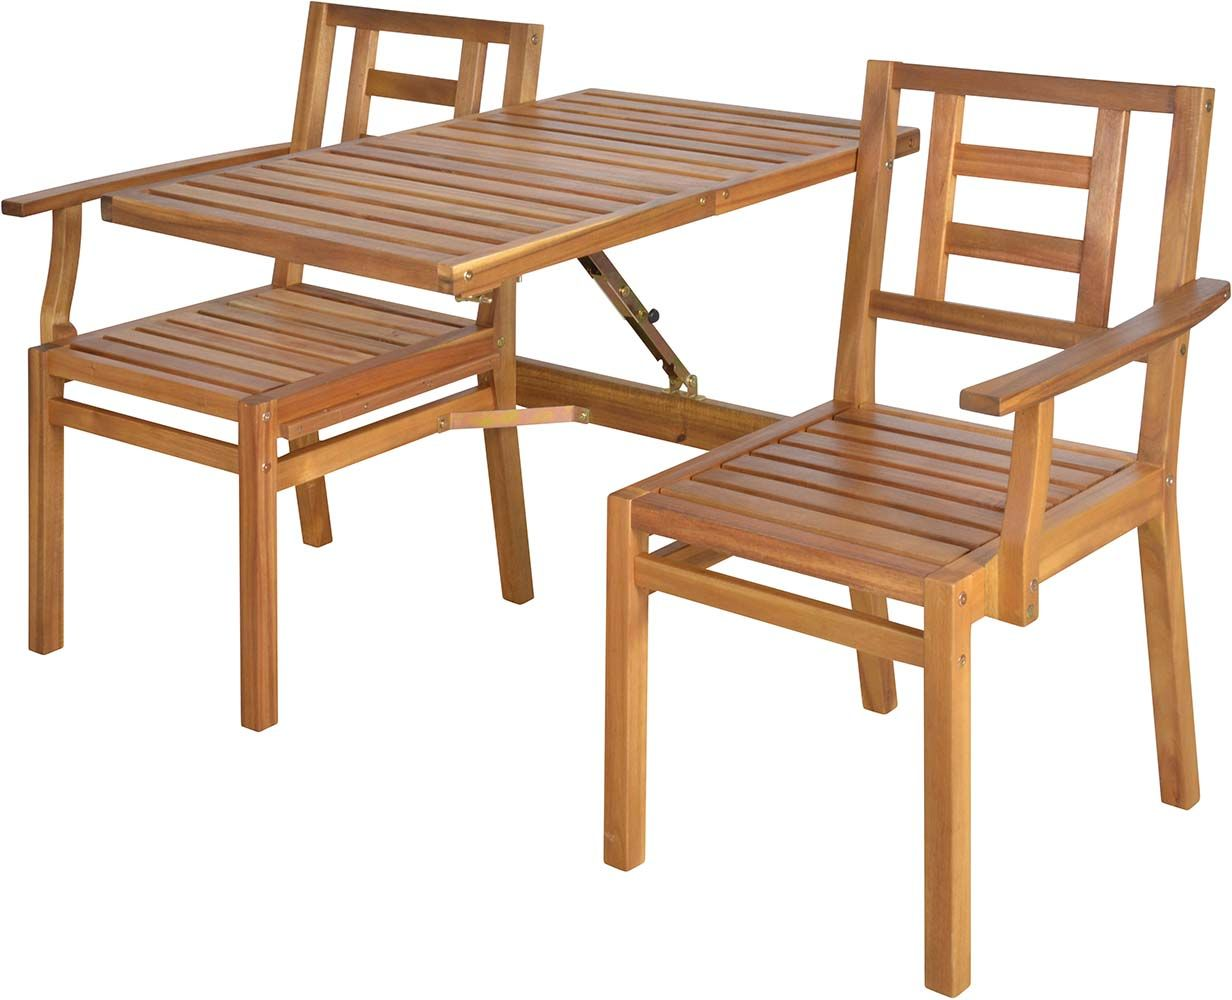 Banc de jardin convertible en table chaises en bois for Table chaise bois